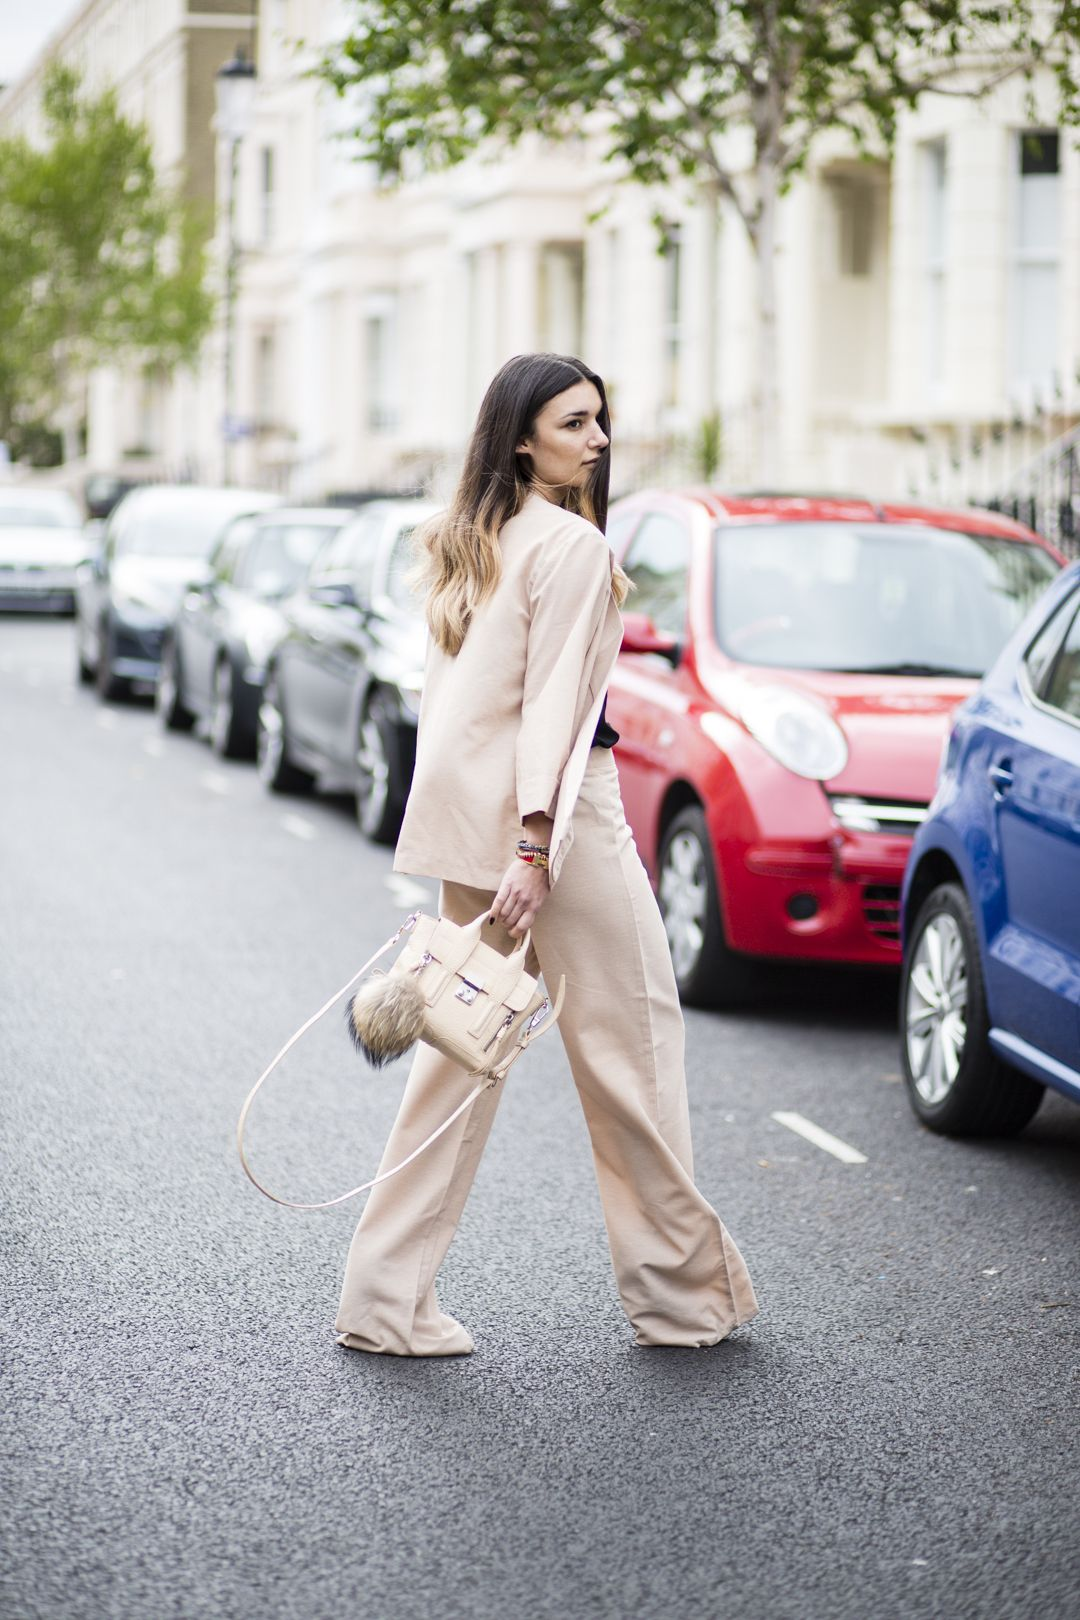 Anisa Sojka wearing beige Fashionnoiz wide-leg pant suit, black H&M cami top, Shashi stackable hippie bracelets and beige 3.1 Phillip Lim mini pashli cross-body bag. Fashion blogger streetstyle shot in London by Cristiana Malcica.